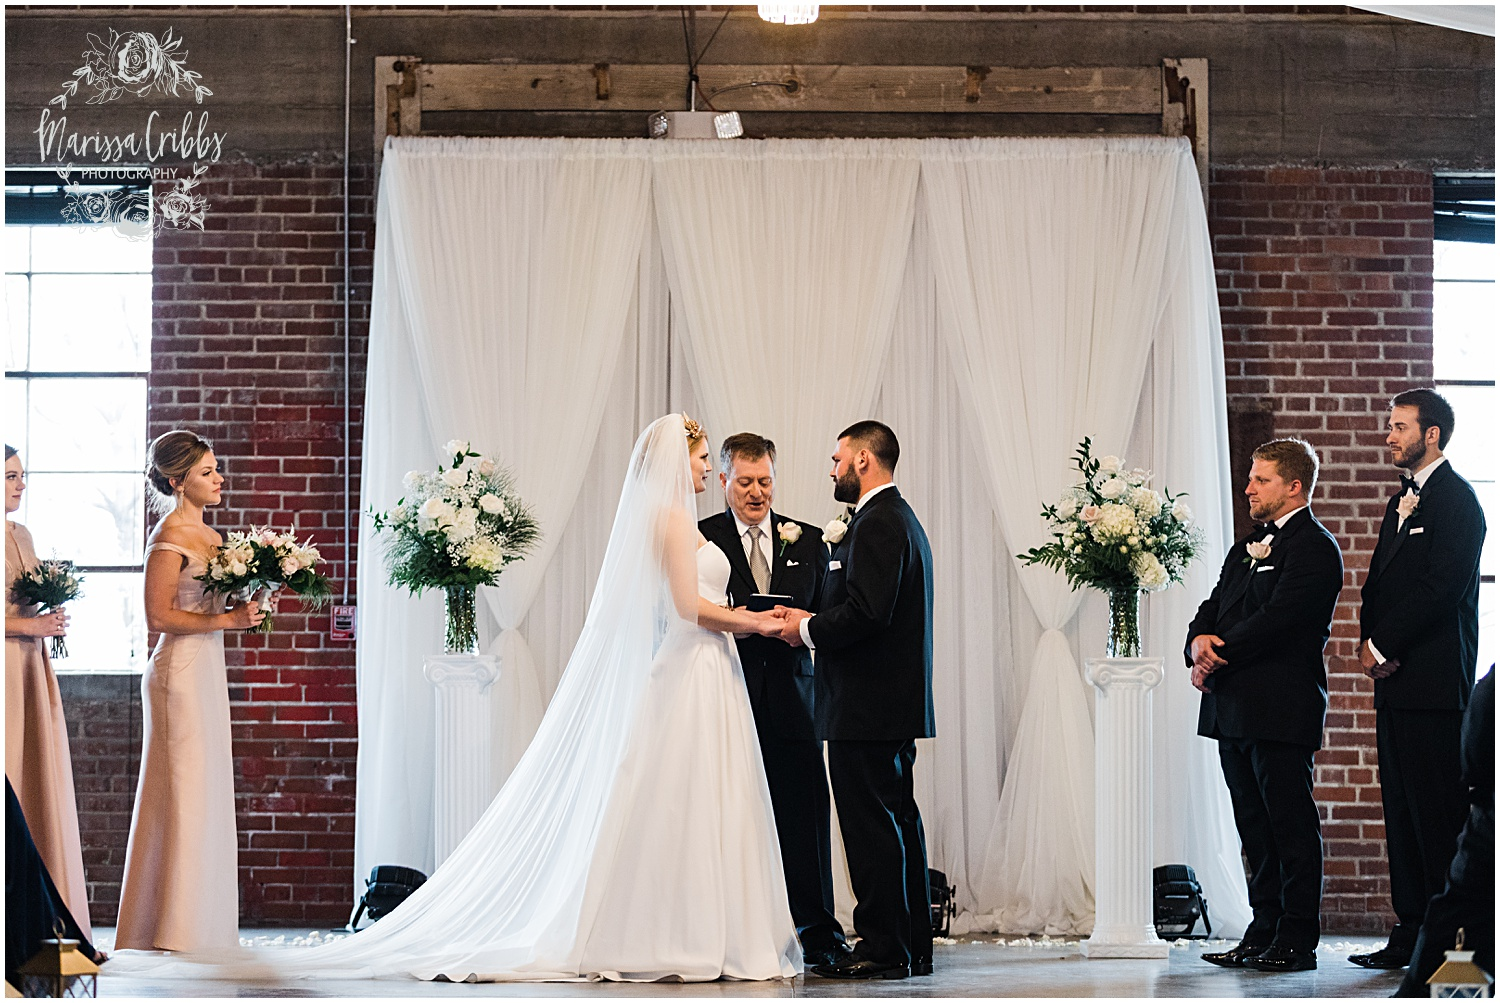 ABBY & CHARLIE WEDDING | THE HUDSON EVENT SPACE WEDDING | MARISSA CRIBBS PHOTOGRAPHY_7554.jpg